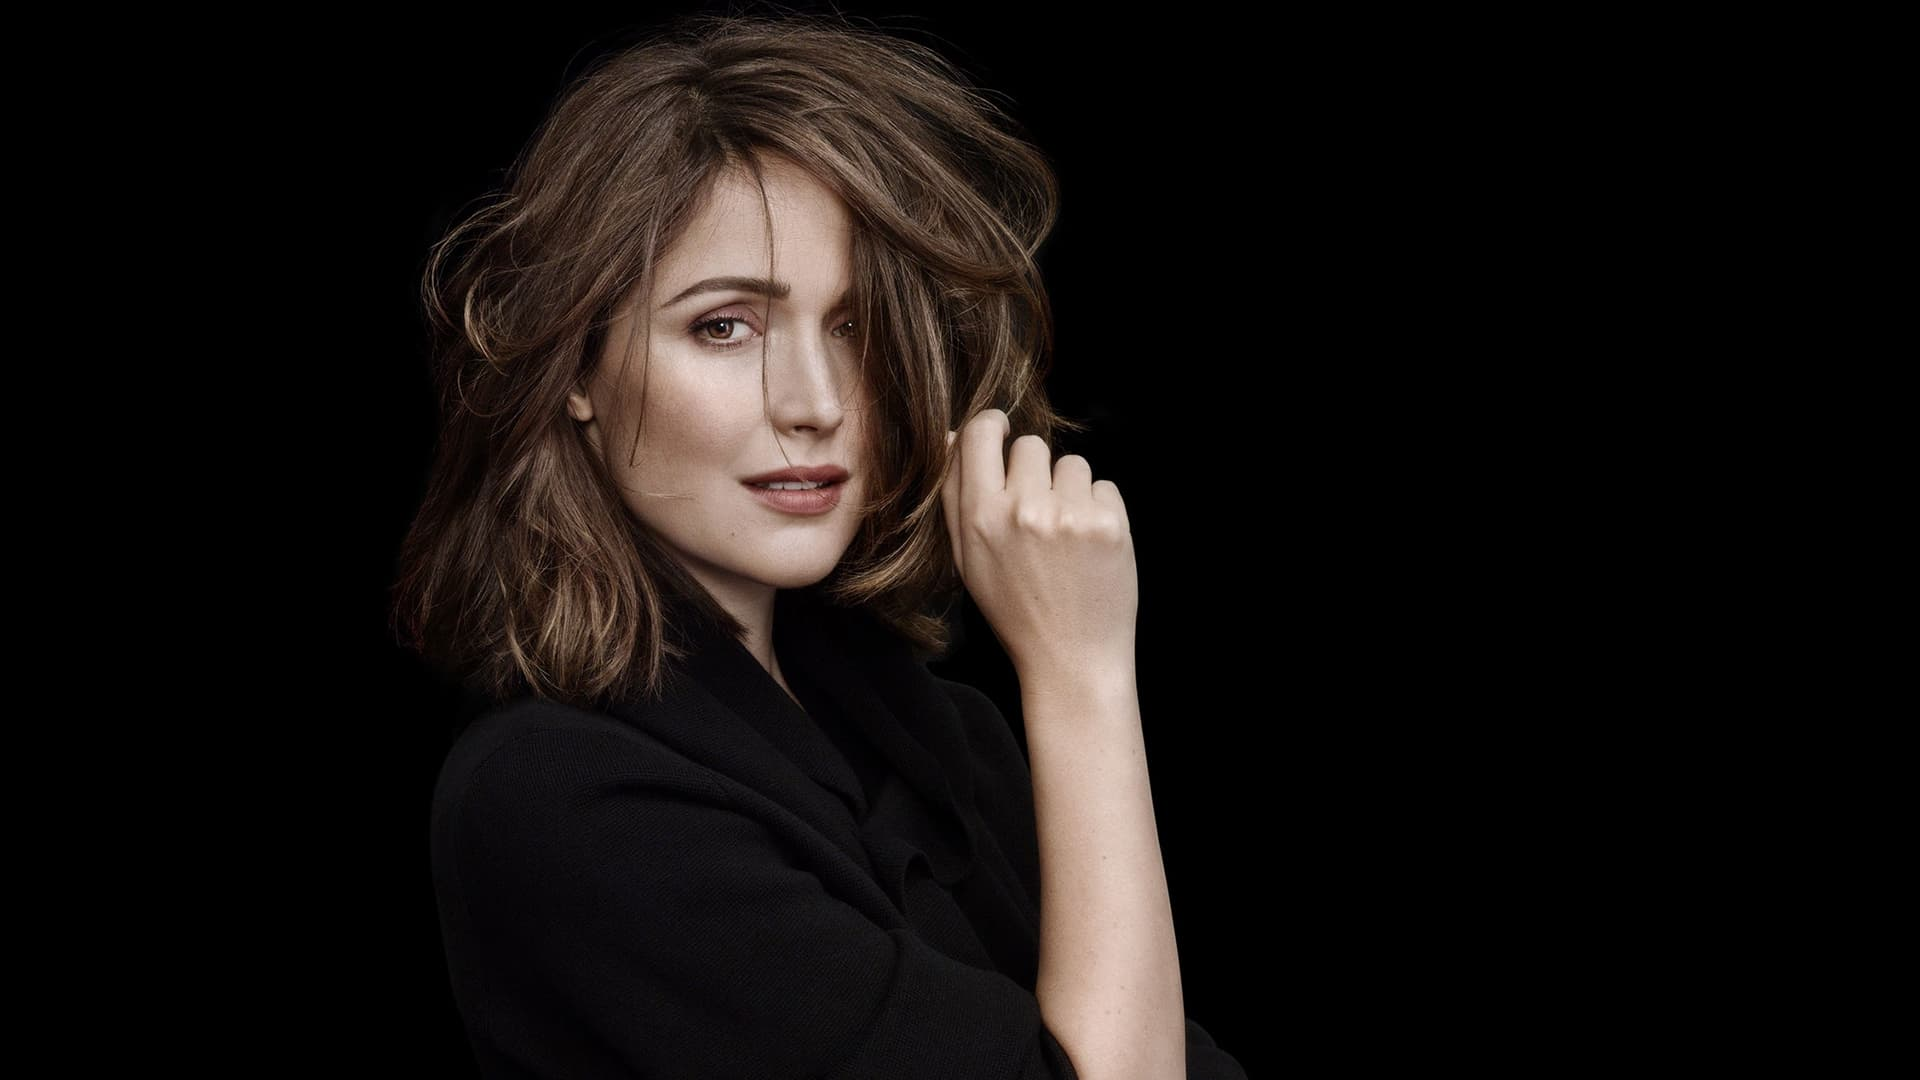 27 Hd Rose Byrne Wallpapers